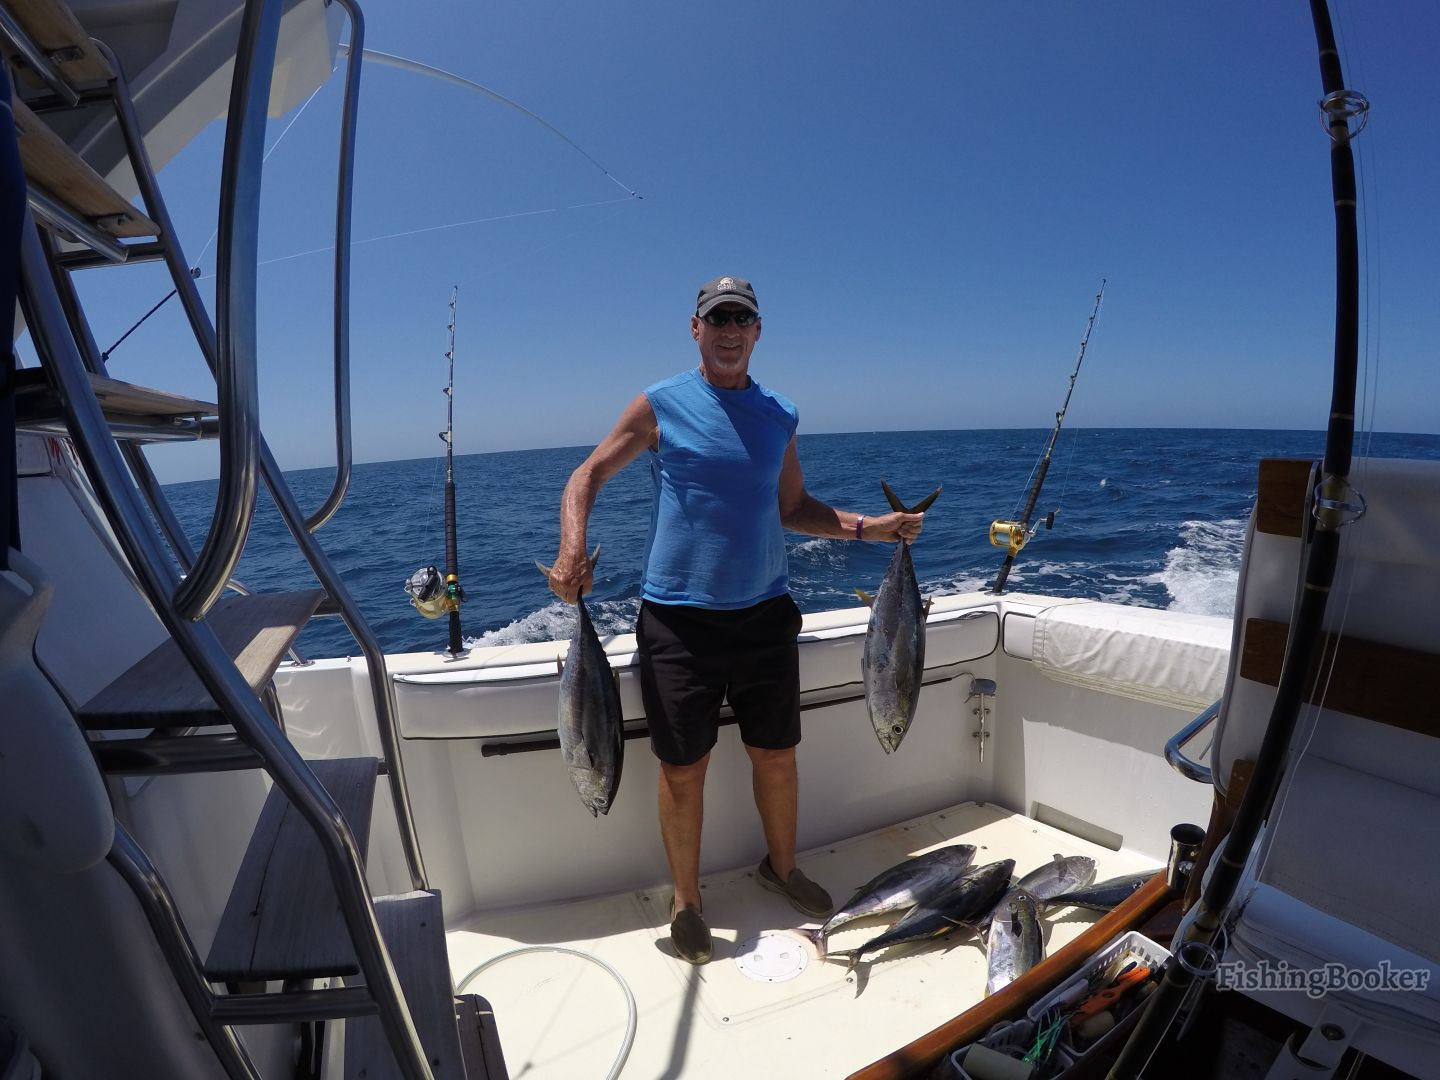 Tuna are biting cabo san lucas fishing report for Cabo san lucas fishing report